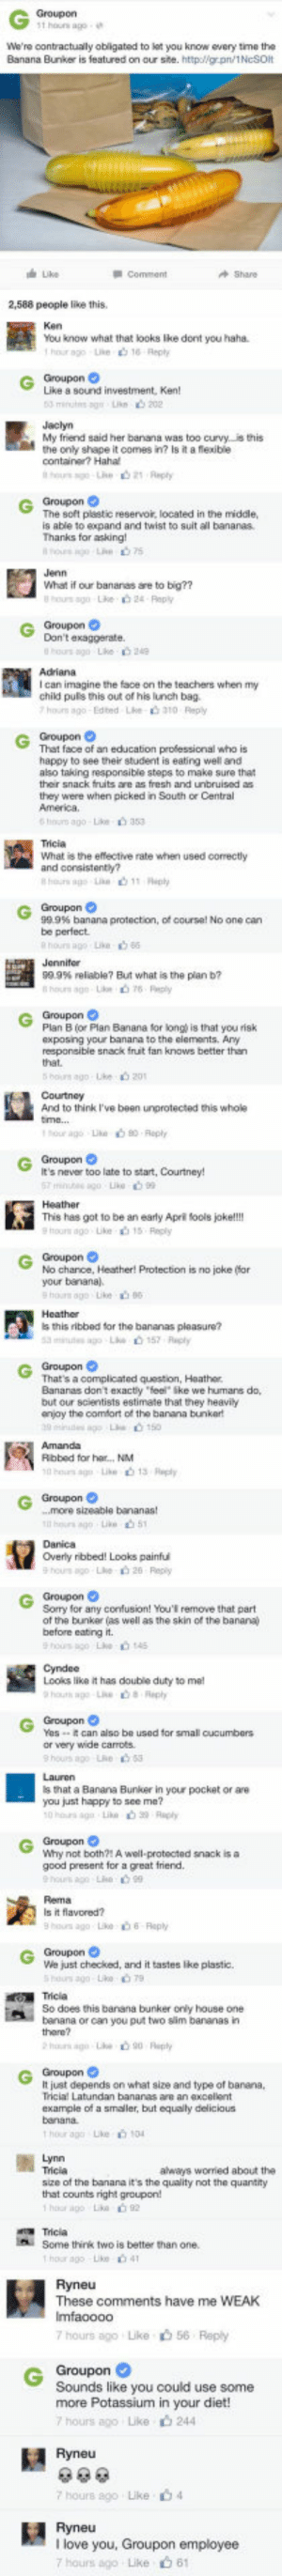 "srsfunny:This Employee From Groupon Is A Genius: We're oontractually obligated to lat you know every time the  Banana Bunker is featured on our ste.httpo/gr.pn/1NeSOlt  Like  2,588 people like this  You know what that looks Ike dont you haha.  Like a sound investment, Ken!  3 minut 3g  My friend said her banana was too curvyis this  the only shape it comes in? is it a flexible  container? Hahal  Groupon  The soft plastic reservoir, located in the midcle  is able to expand and twist to suit all bananas  Thanks for asking  What if our bananas are to big??  I can imagine the face on the teachers when my  child puls this out of his lunch bag  7 ho mago. Edted Lke 310 Reply  That face of an education professional who is  happy to see their student is eating well and  also taking responsible steps to make sure that  their snack fruits are as fresh and unbruised as  they were when picked in South or Central  What is the effective rate when used correctly  8 hours ago uke山11 nephy  99.9% banana protection, of course! No one can  be perfect  hours ago Like 6  999% reliable? But what is the plan b?  Plan B for Plan Banana for long) is that you risk  axposing your banana to the elements. Any  responsible snack fruit fan knows better than  that.  And to think I've been unprotected this whole  hour ago Lie 0-Reply  Groupon  It's never too late to start, Courtney!  This has got to be an early April fools joke!!  hours ag Like 15 Raply  No chance, Heather! Protection is no joke (for  your bananal  s this ribbed for the bananas pleasure?  That's a complicated question, Heather  Bananas dont exactly feel"" Ske we humans do,  but our scientists estimate that they heaviy  anjay the comfort of the banana bunker  Rbbed for her.., NM  hours ag Like 13 Rply  -.more sizeable bananas!  hours ago e 51  Danica  Overly ribbed! Looks painful  hours ago e 26 Reply  Sorry for any confusion! You' remove that part  ot the bunker (as well as the skin of the banana)  Looks like it has double duty to ma  Yescan also be used tor smal cucumbers  or very wide carrots  hours ago Le  s that a Banana Bunker in your pocket or are  you just happy to see me?  Groupon  Why not both?: A well-protected snack is a  good present for a great friend.  9 hours ago Lik  6-Roply  We just checked, and it tastes like plastic  0 Lke 79  Tricia  So does this banana bunker only house one  banana or can you put two slim bananas in  Groupon C  It just depends on what size and type of banana,  Tricial Latundan bananas are an excellent  example of a smaller,but equally delicious  always worried about the  size of the banana it's the quality not the quantity  that counts right groupon!  Some think two is better than one.  These comments have me WEAK  hours ago Like 56 Reply  Groupon  Sounds like you could use some  more Potassium in your diet!  7 hours ago Like 244  Ryneu  7 hours ago Like 4  I love you, Groupon employee  7 hours ago Like 61 srsfunny:This Employee From Groupon Is A Genius"